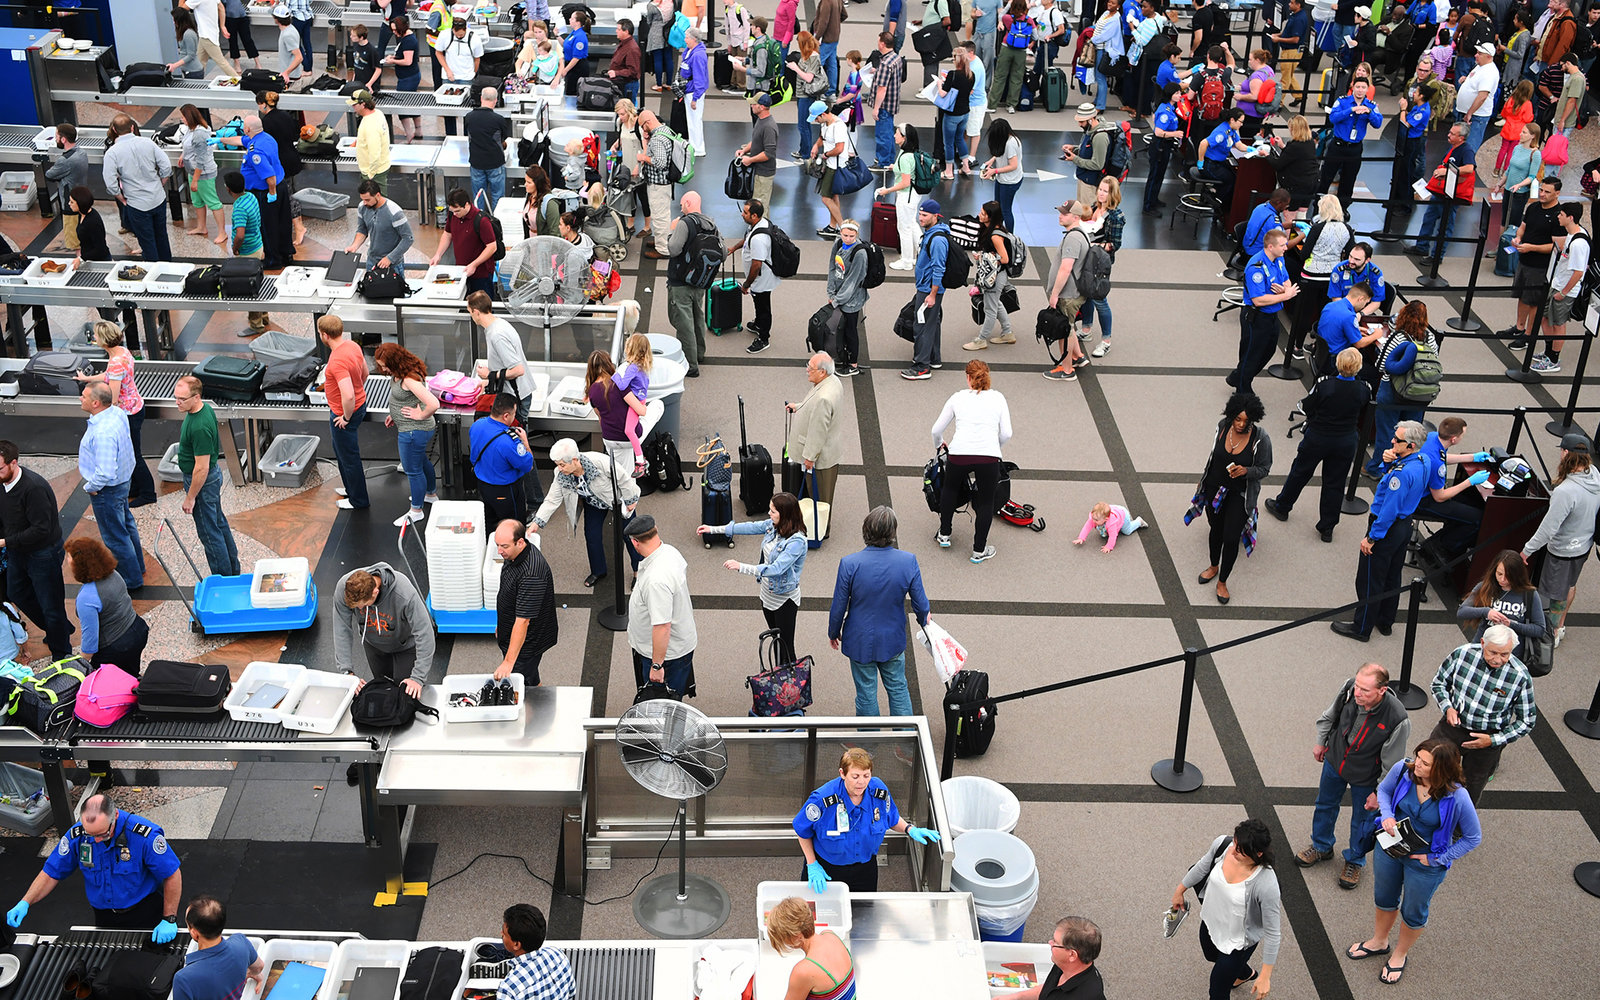 tsa says passengers only have themselves to blame for long lines